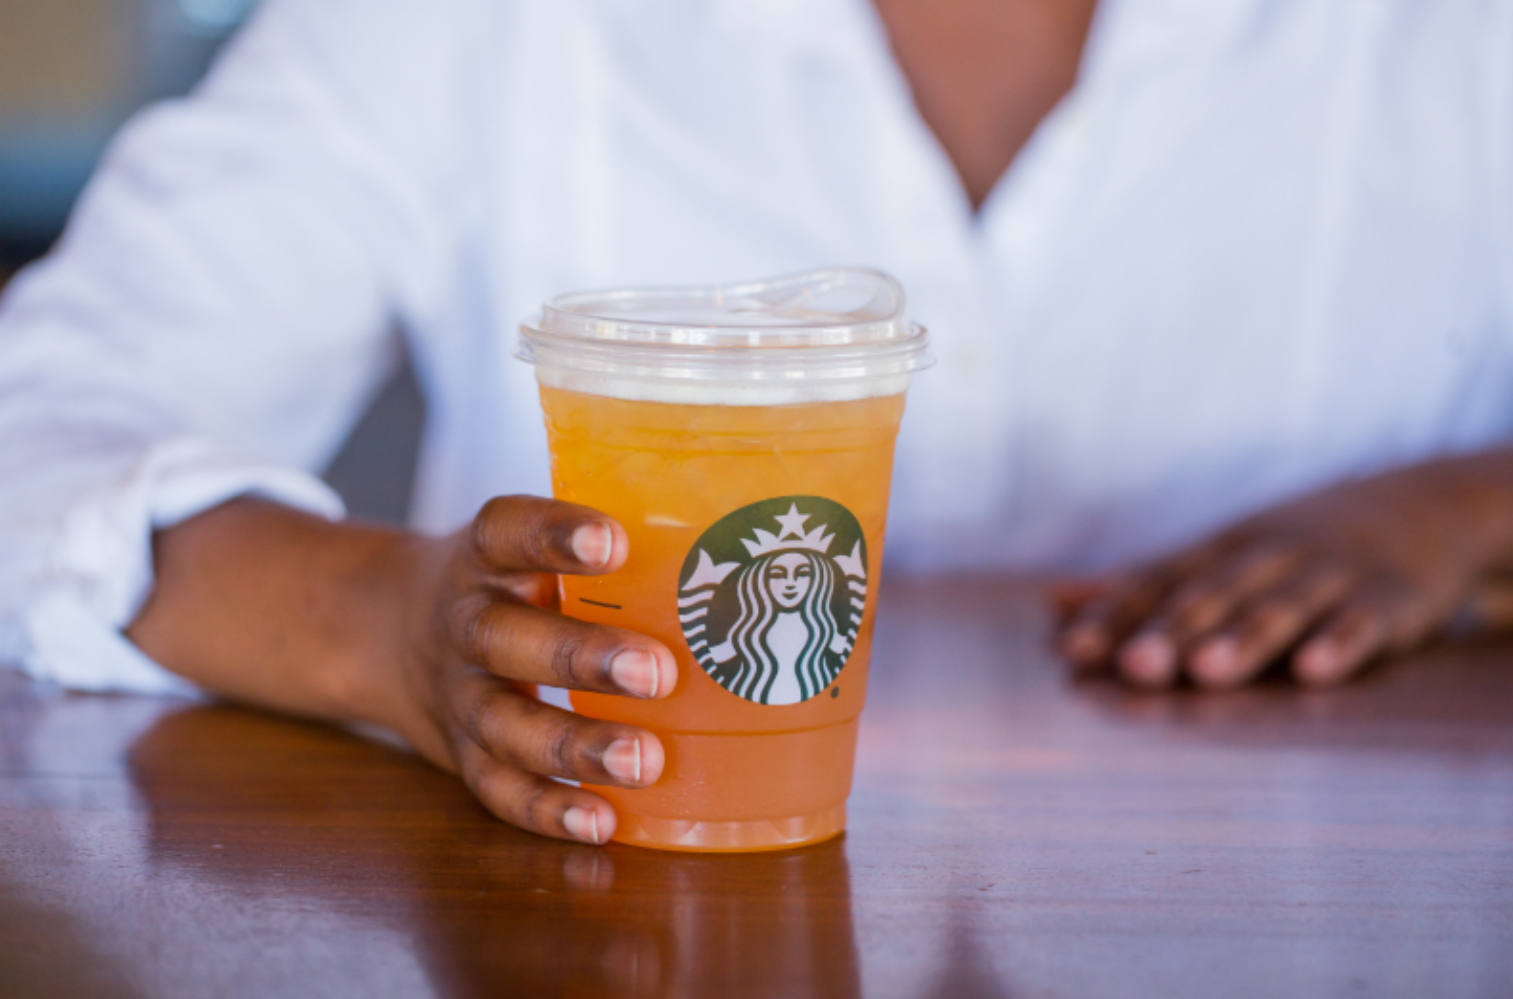 Starbucks unveils new strawless lids to reduce plastic pollution of the environment